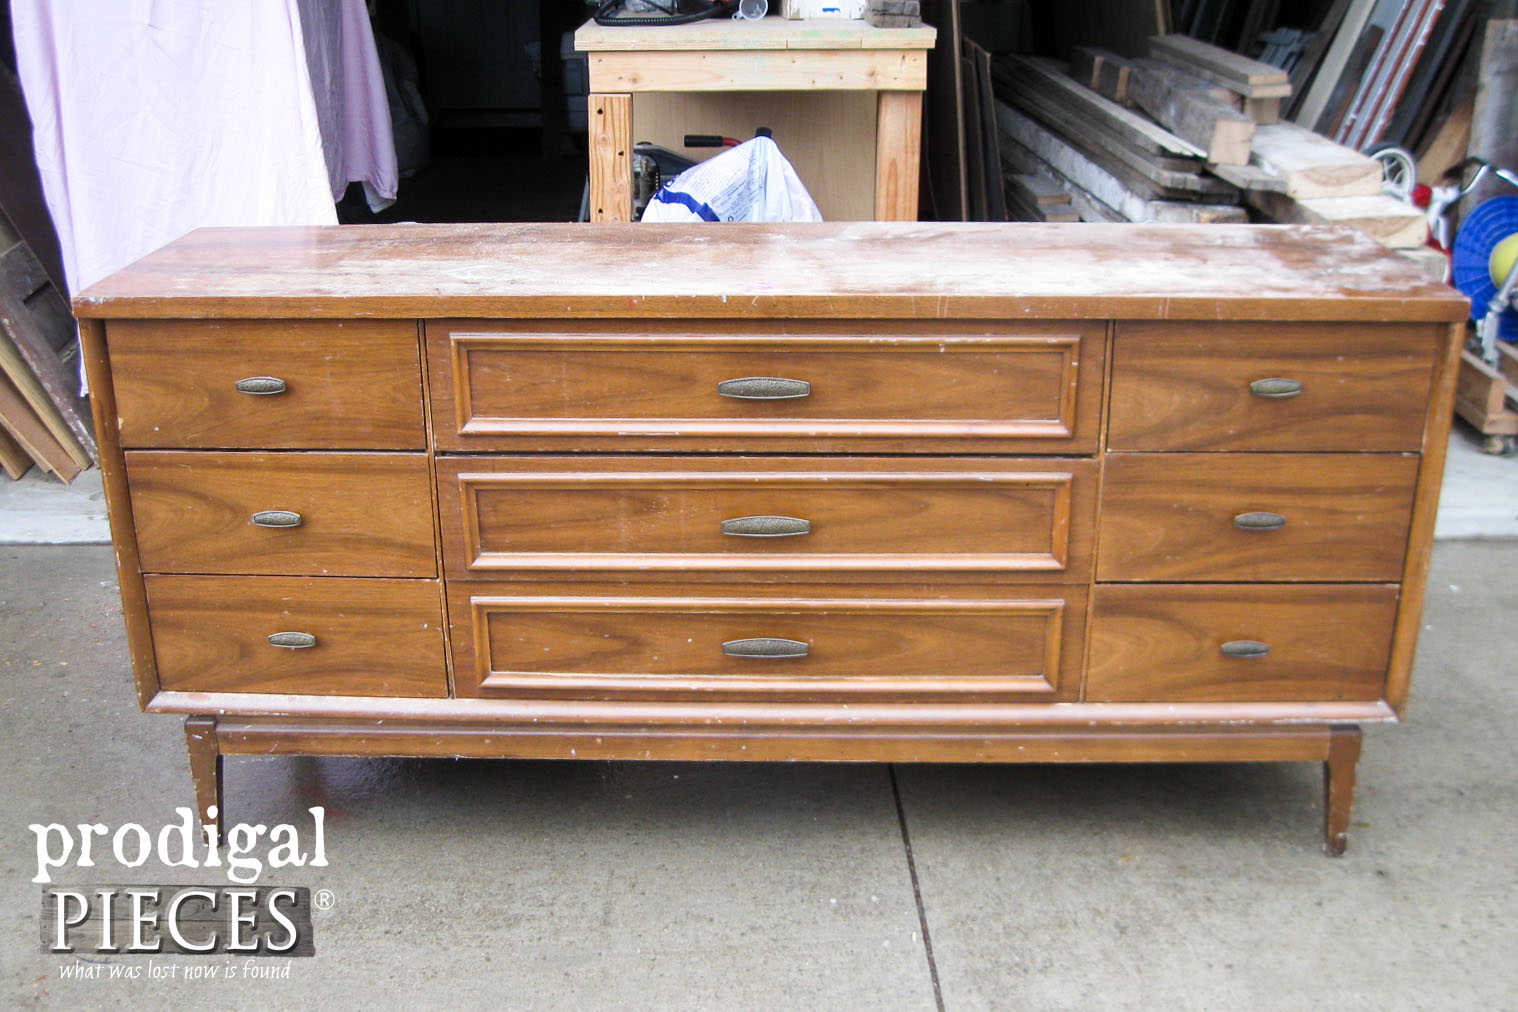 Before of Mid Century Modern Credenza | Prodigal Pieces | www.prodigalpieces.com